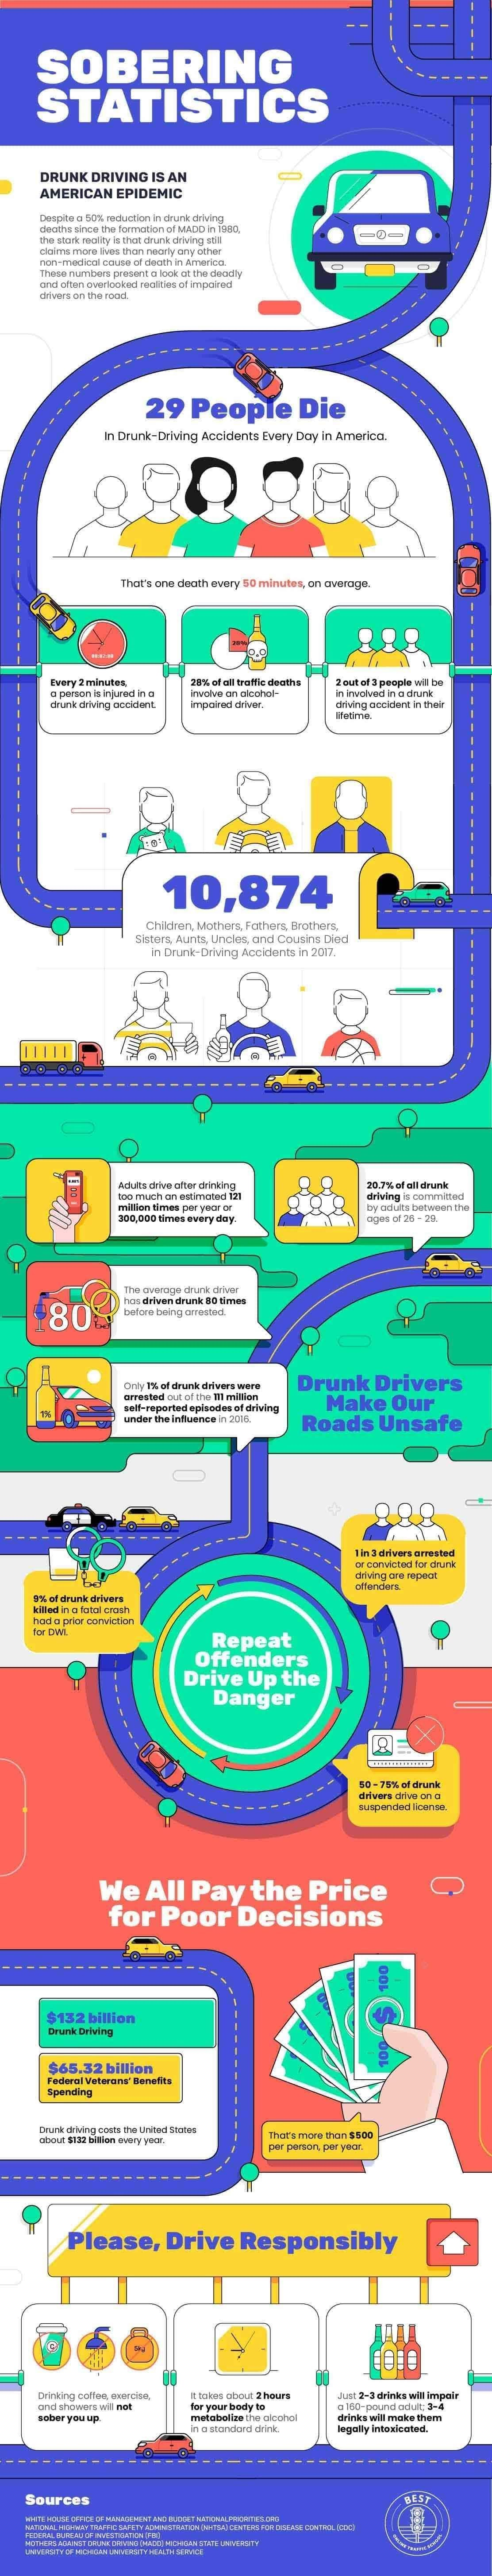 Drunk Driving Statistics #infographic